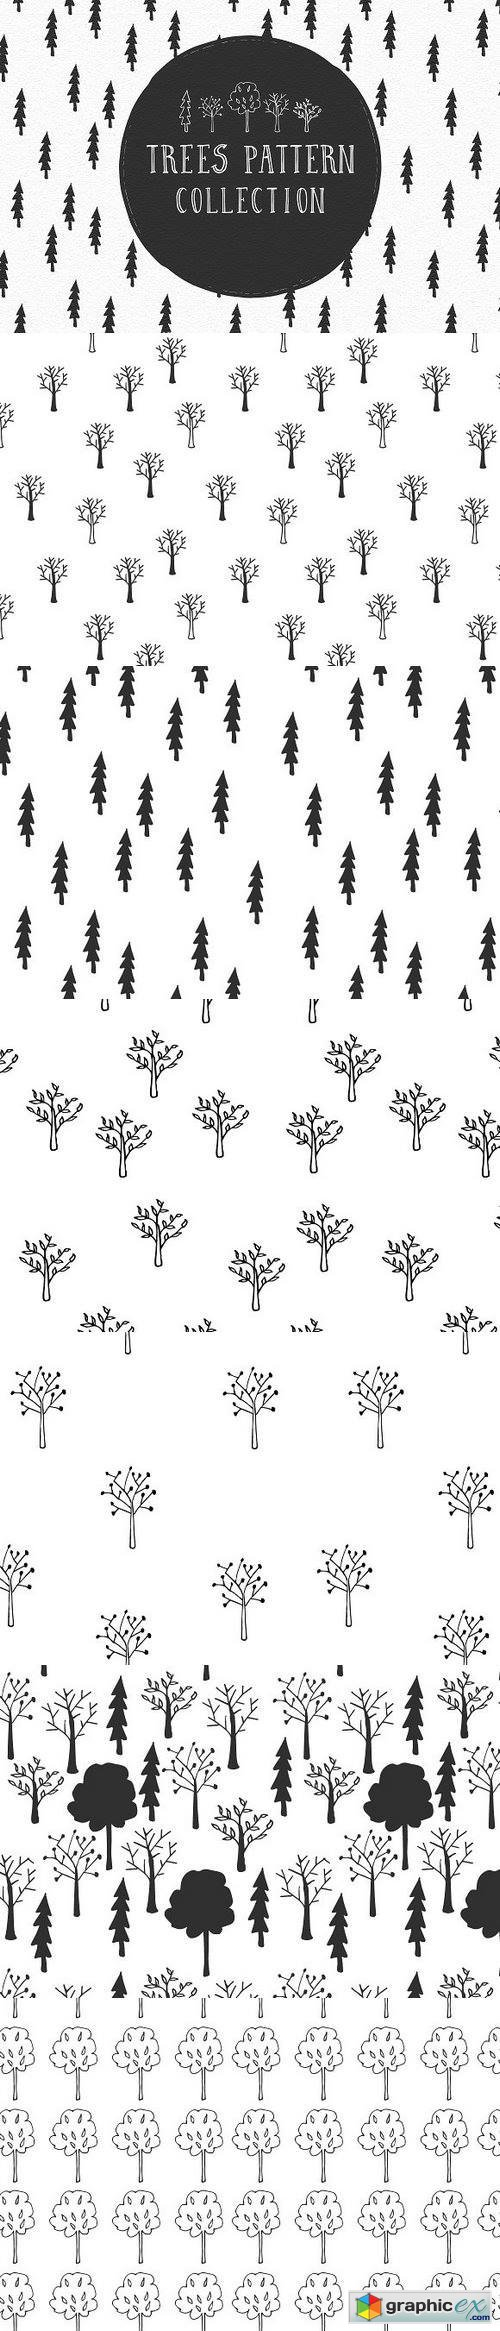 Trees pattern collection